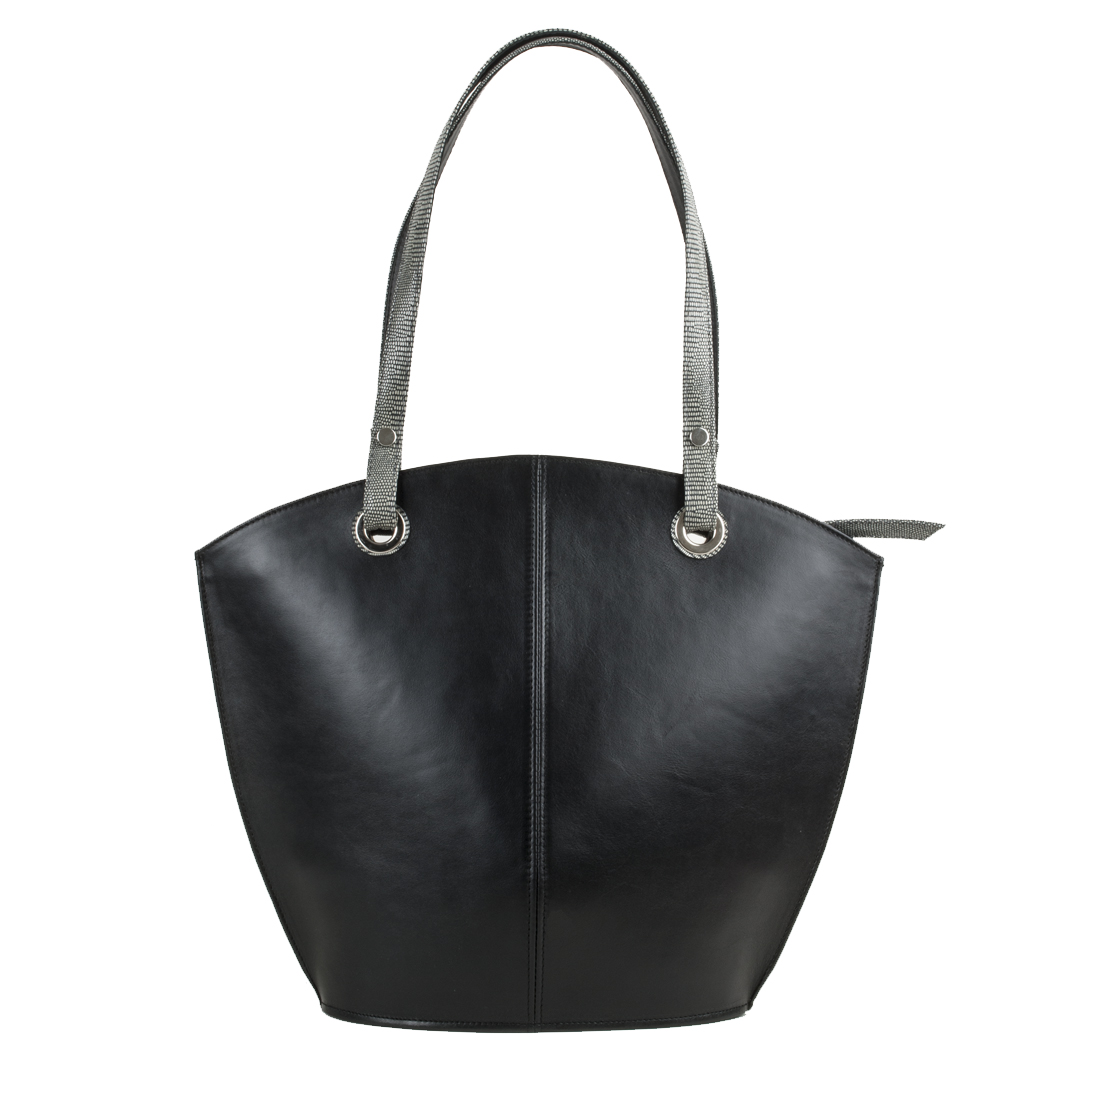 Audrey Black Leather Tote Bag